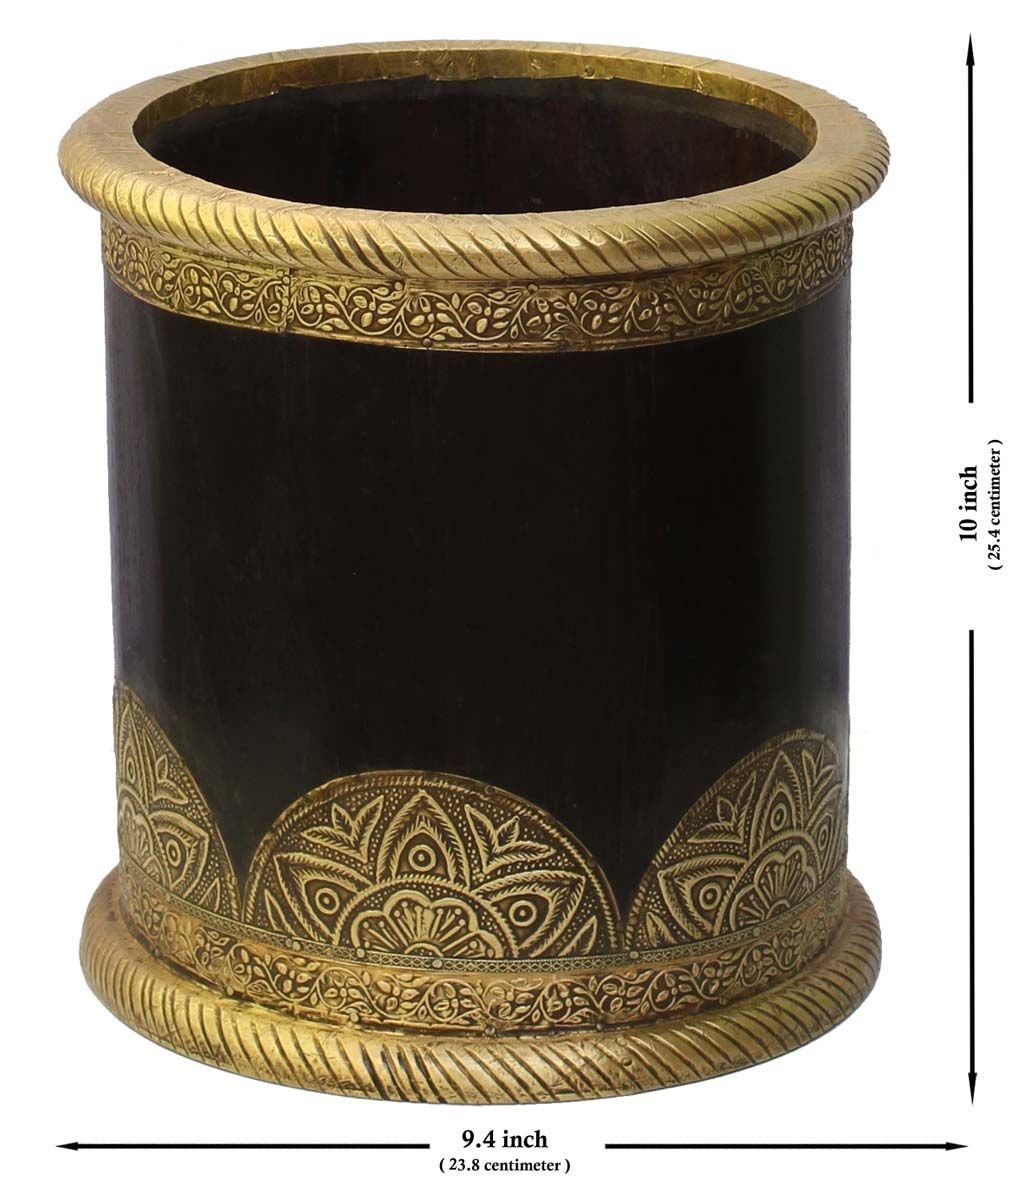 Bulk Wholesale Handmade 10 Cylindrical Flower Vase Pot In Black Decorated With Golden Brass Work Antique Look Vase Flower Planters Unique Planter Handmade